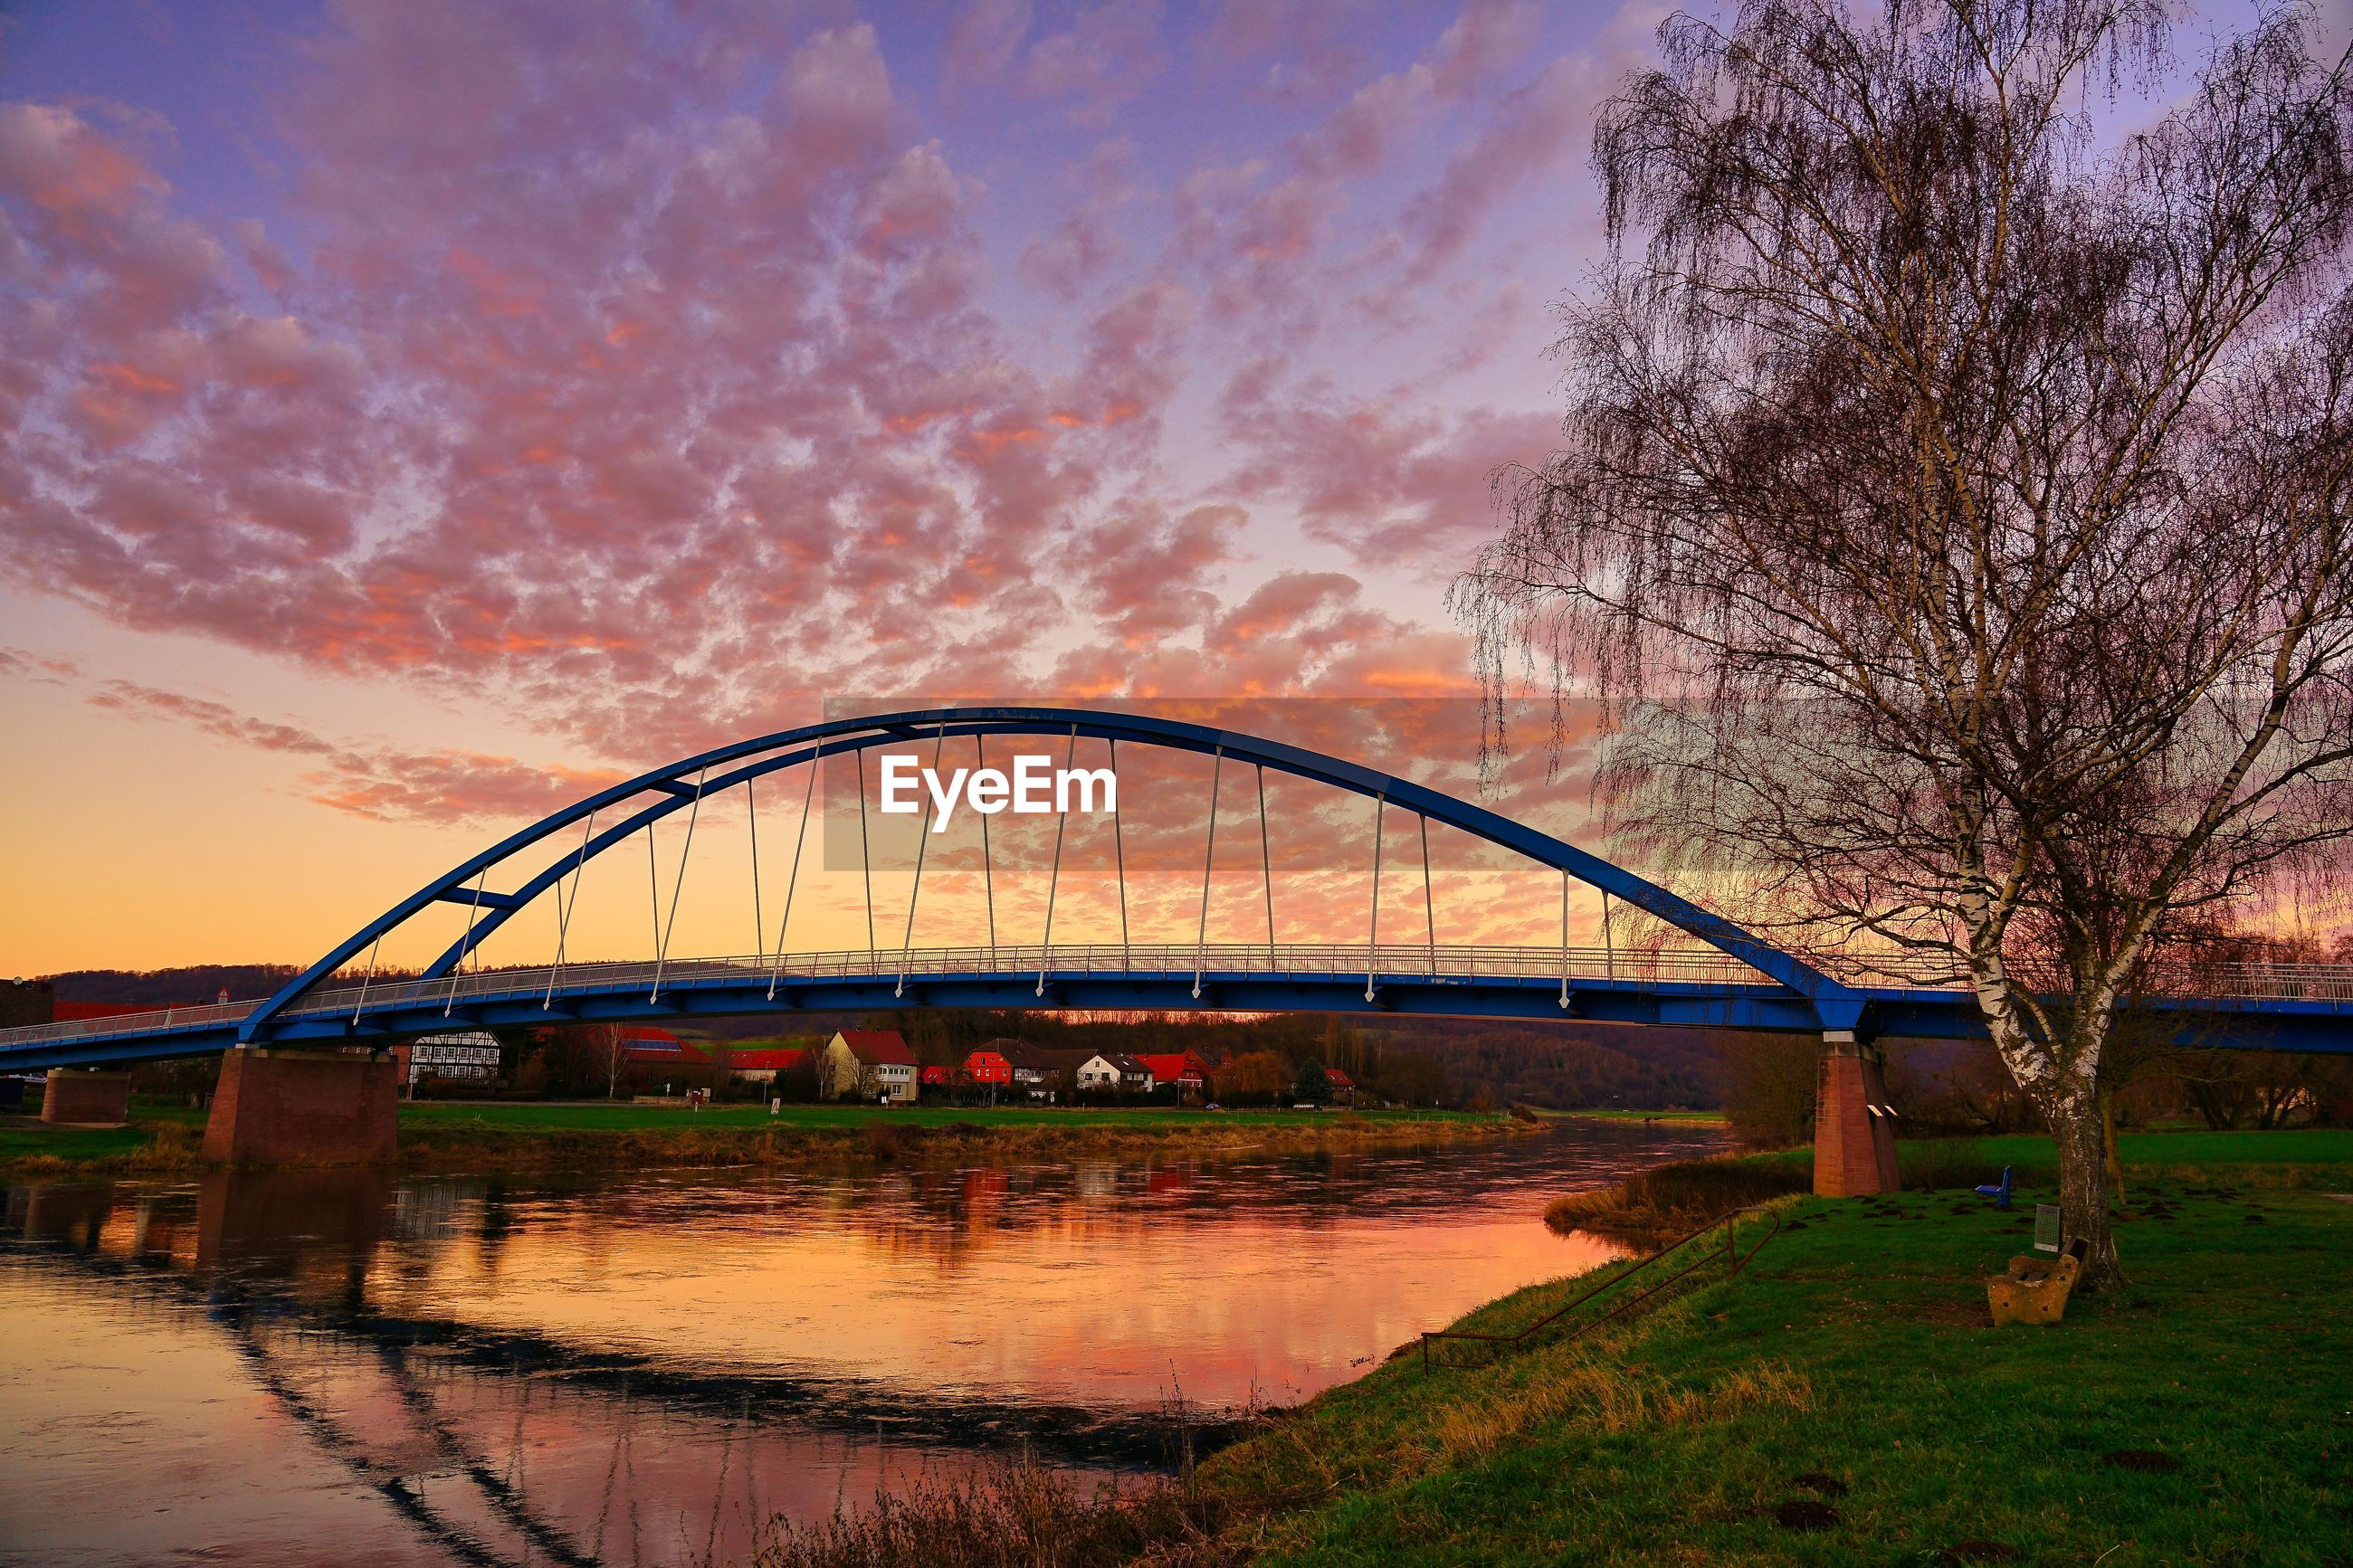 VIEW OF BRIDGE OVER RIVER AGAINST SKY DURING SUNSET